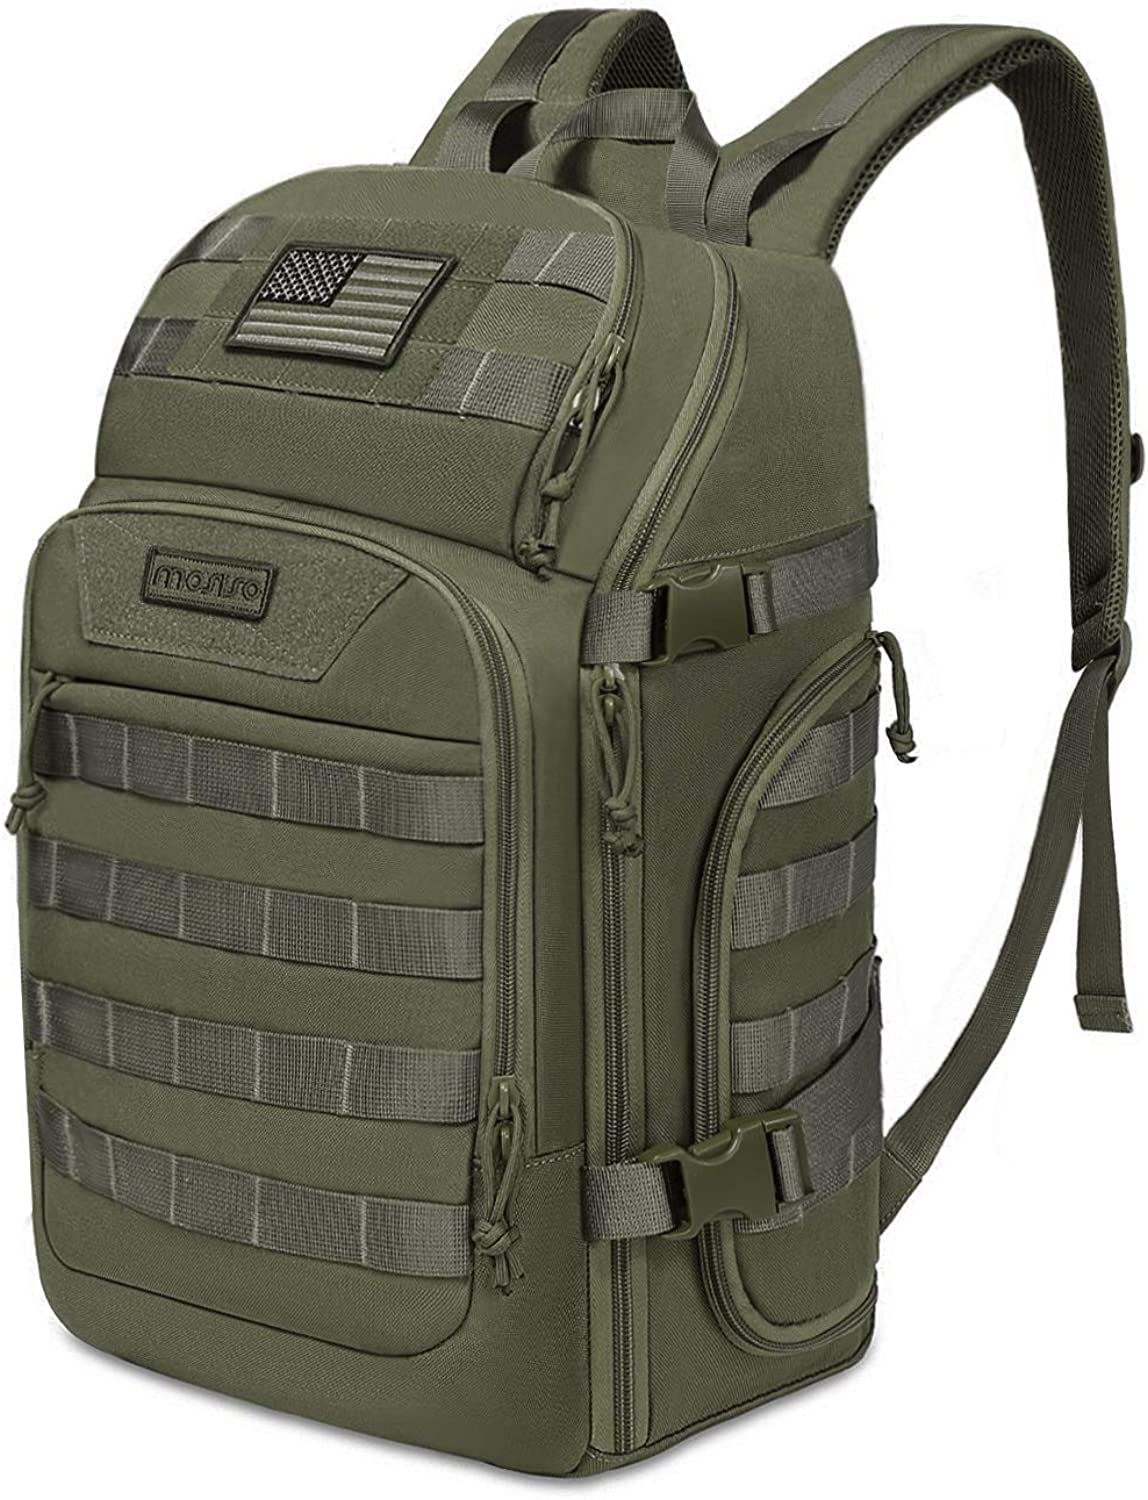 MOSISO 30L Tactical Backpack, Military Daypack 3 Day Assault Molle Rucksack Bag